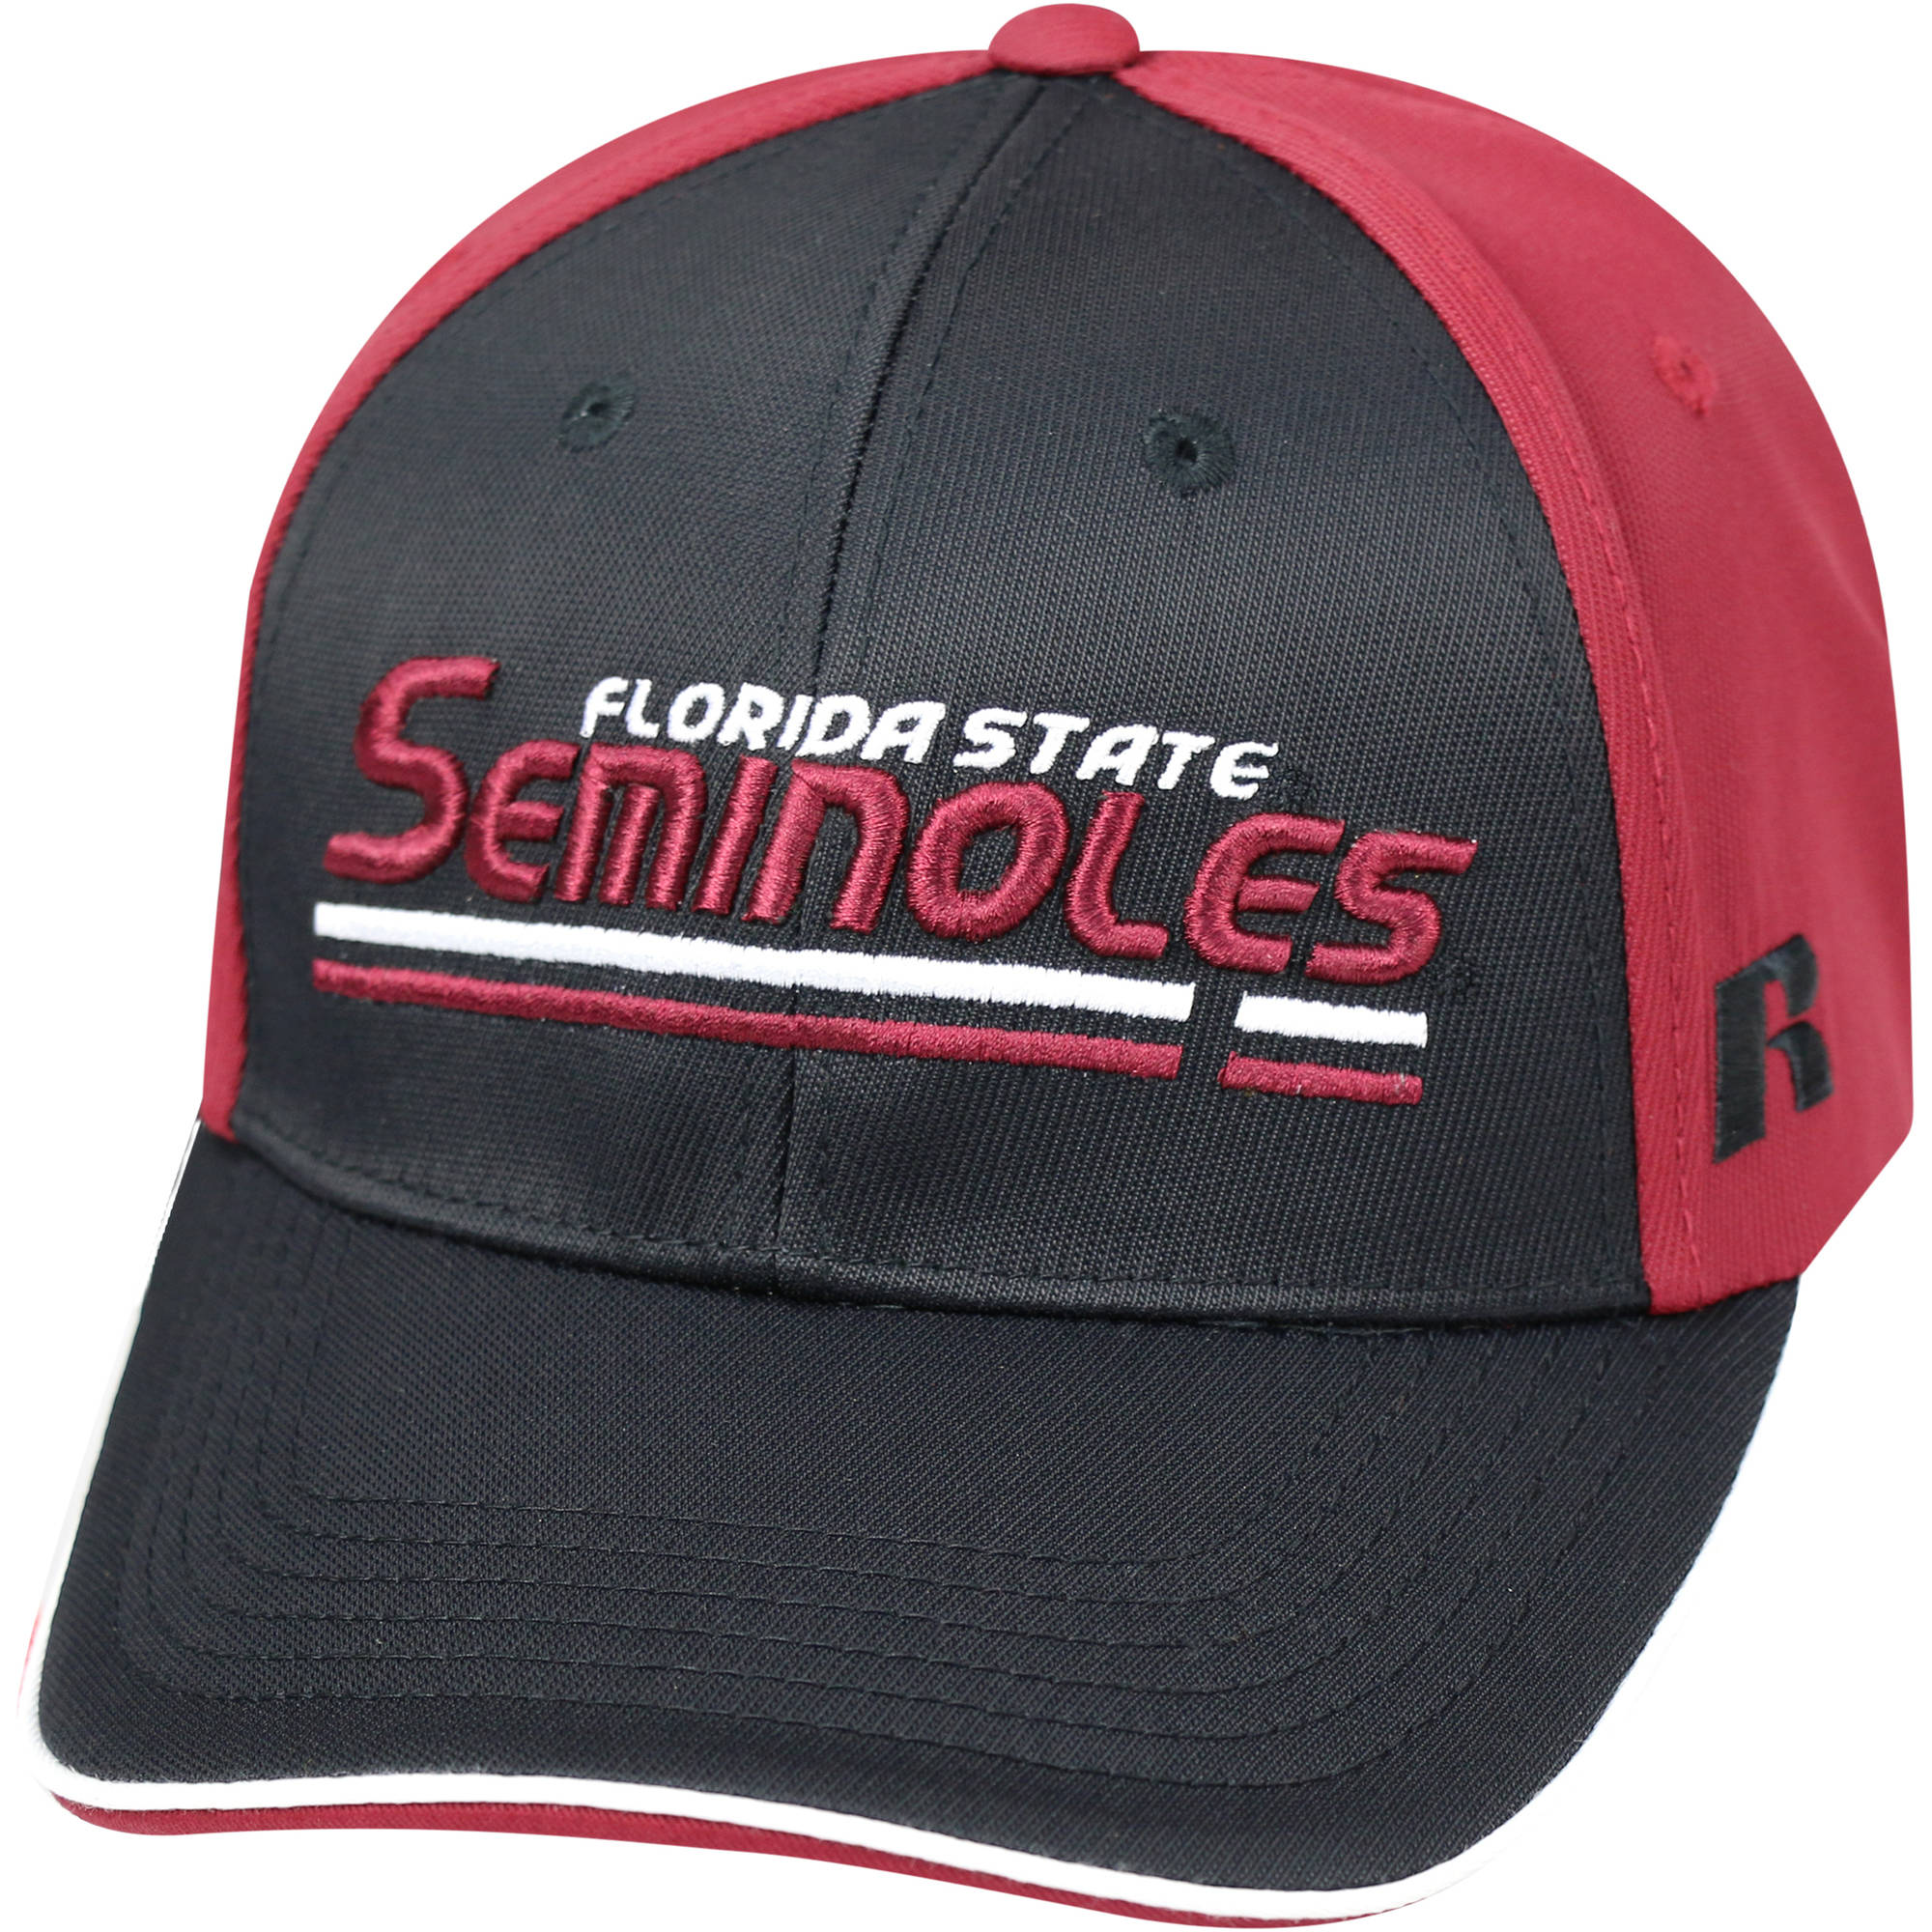 a5d8bee4cf2dad ... low cost university of florida state seminoles away two tone baseball  cap d1142 96754